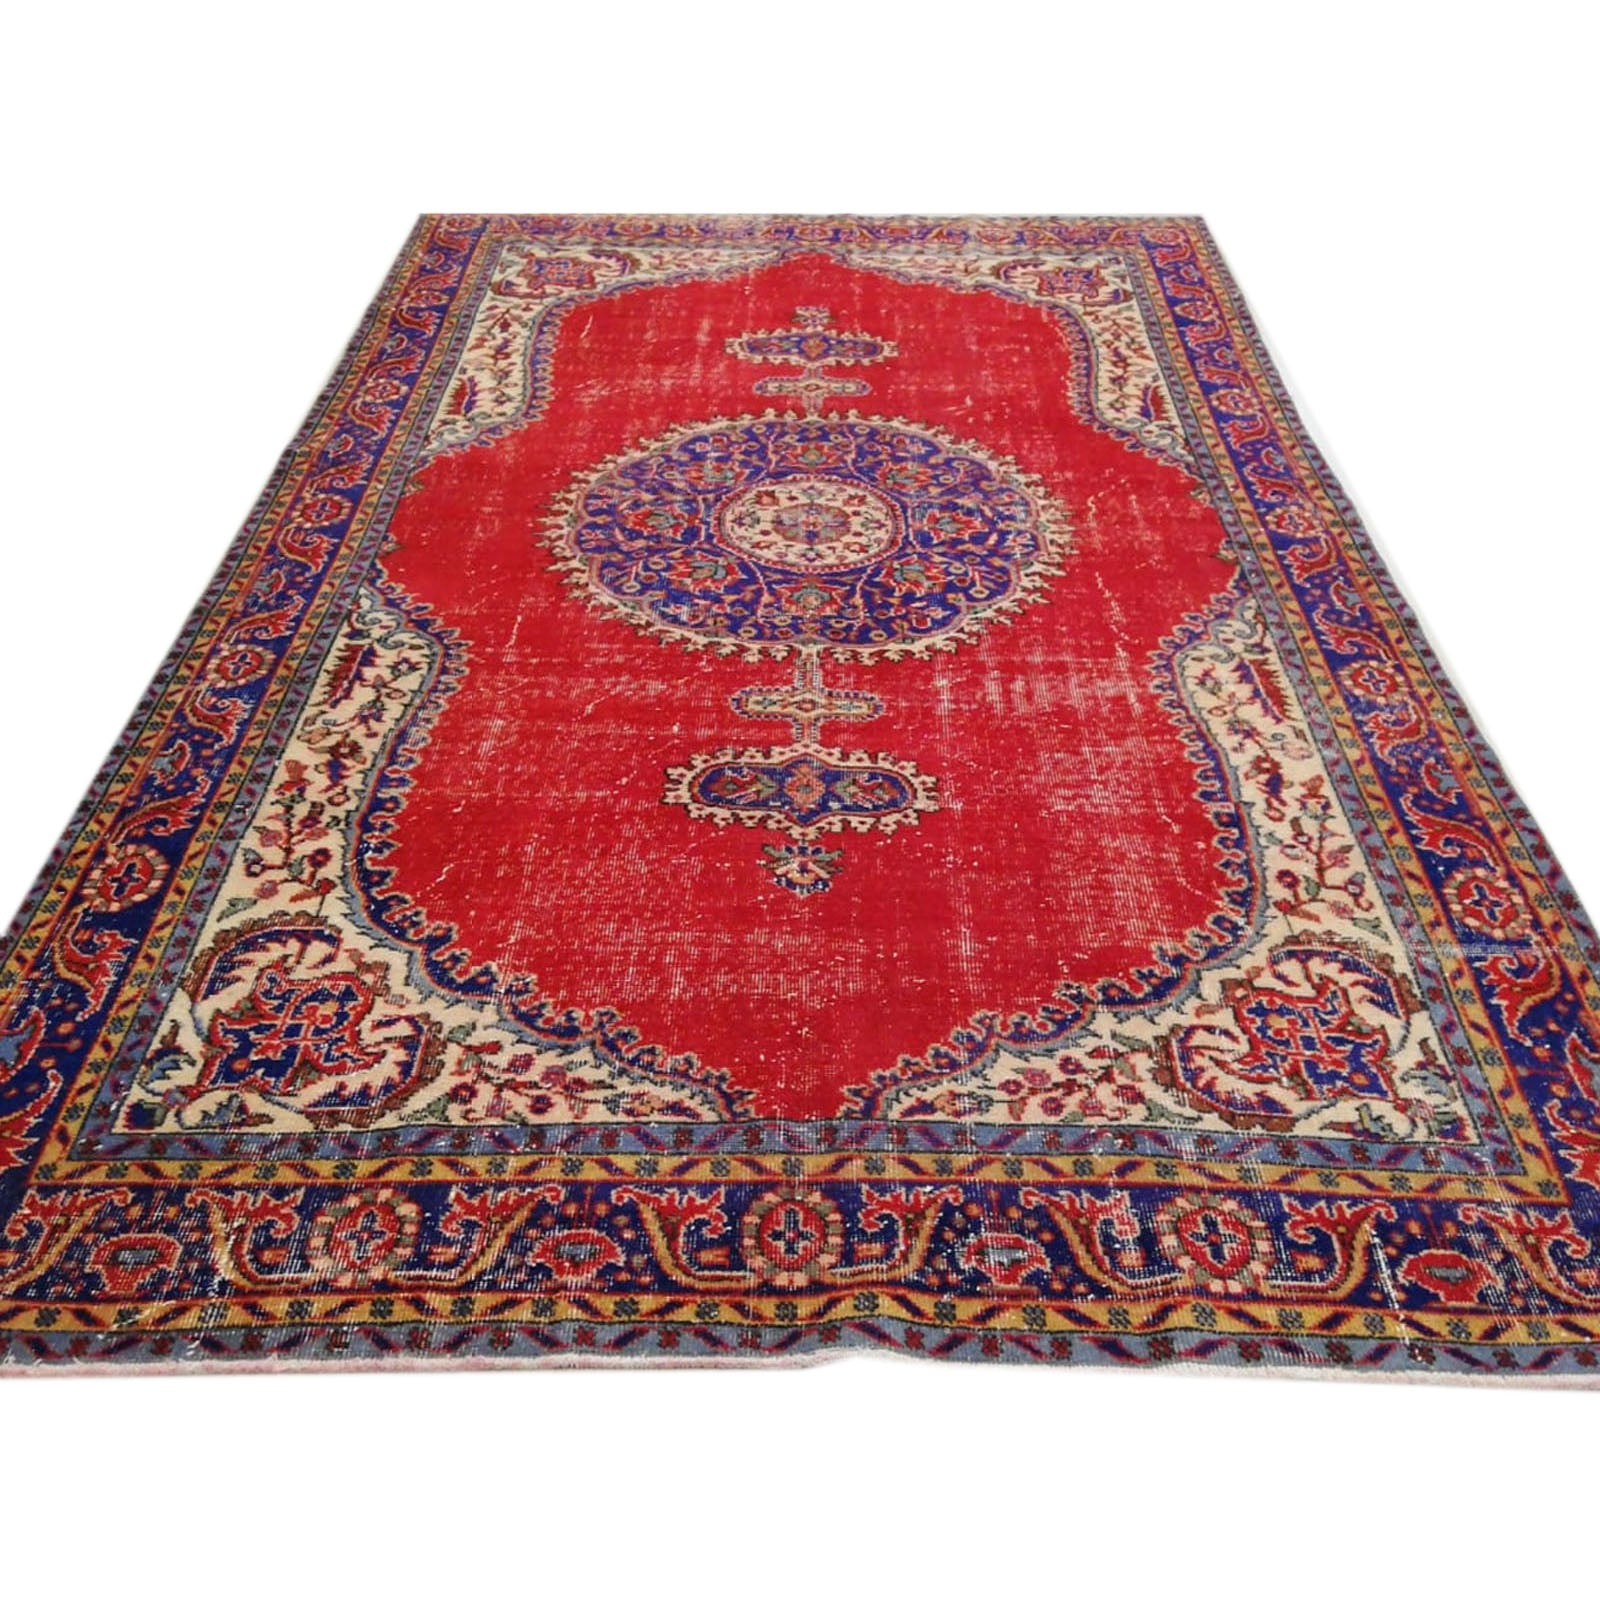 Hali 207X310  CM Bursa Handmade over dyed rug 3036 -  207*310 سجاده بورصة صناعة يدوية على بساط مصبوغ - Shop Online Furniture and Home Decor Store in Dubai, UAE at ebarza